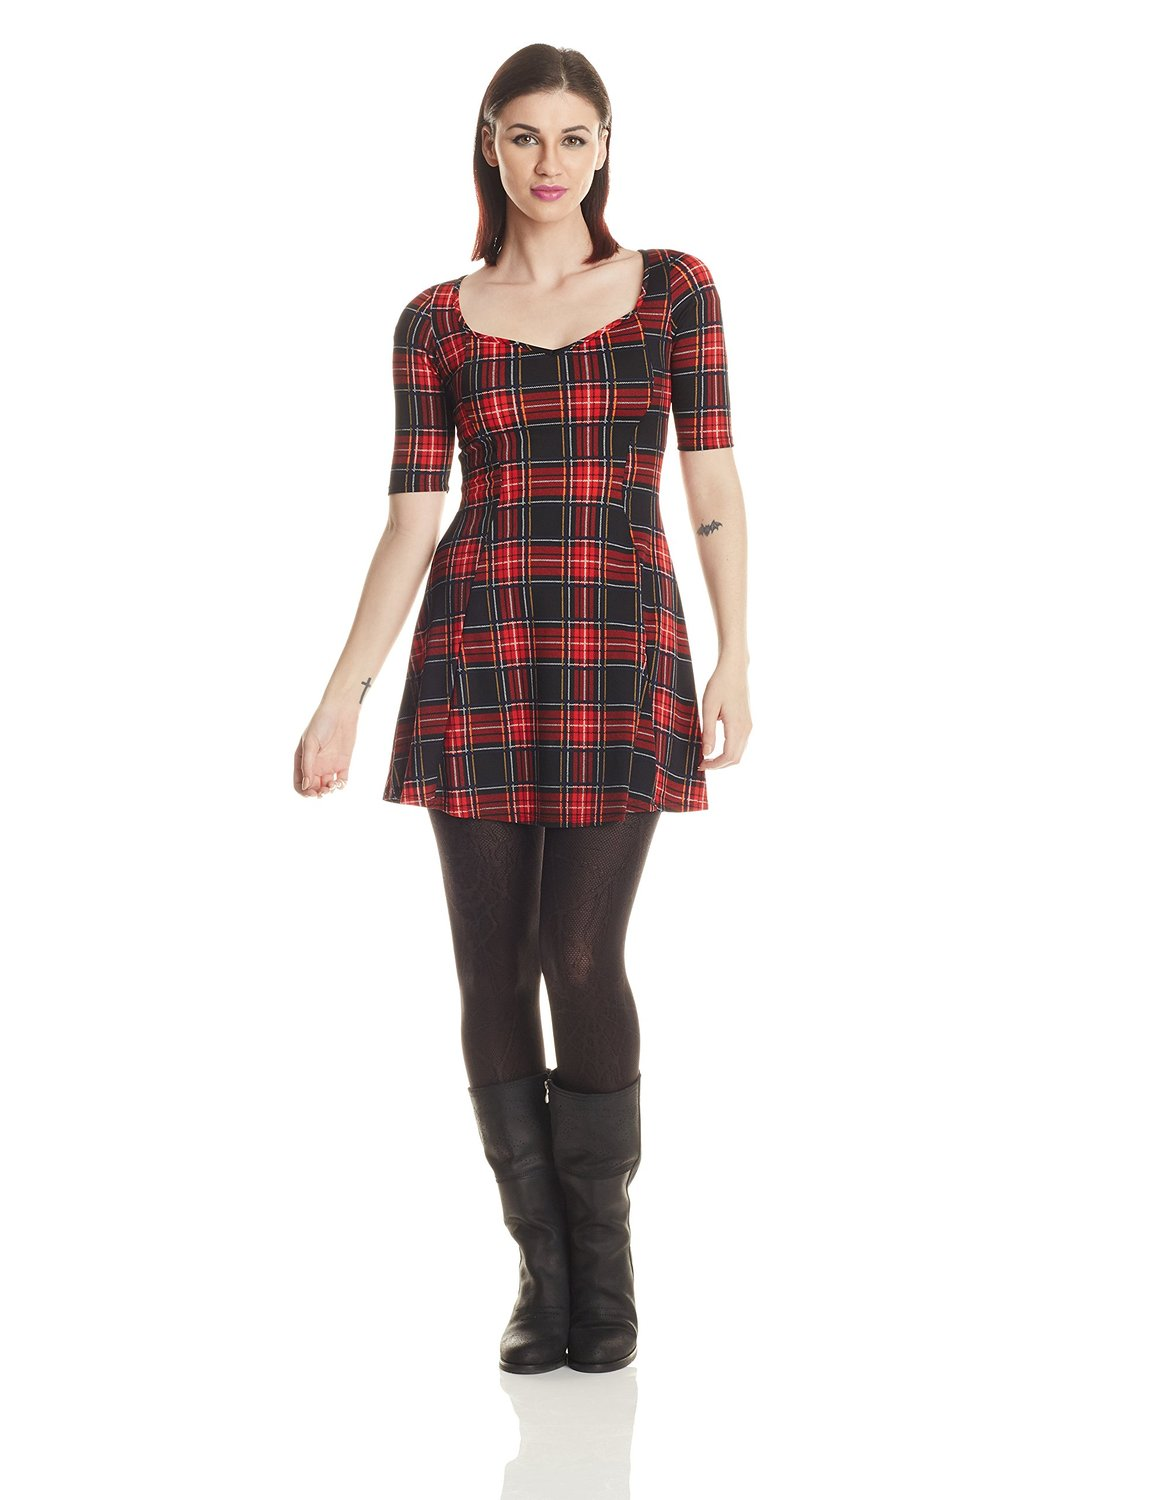 12pm by mon ami women's tartan plaid skater dress with sweetheart neck at amazon women's clothing store: